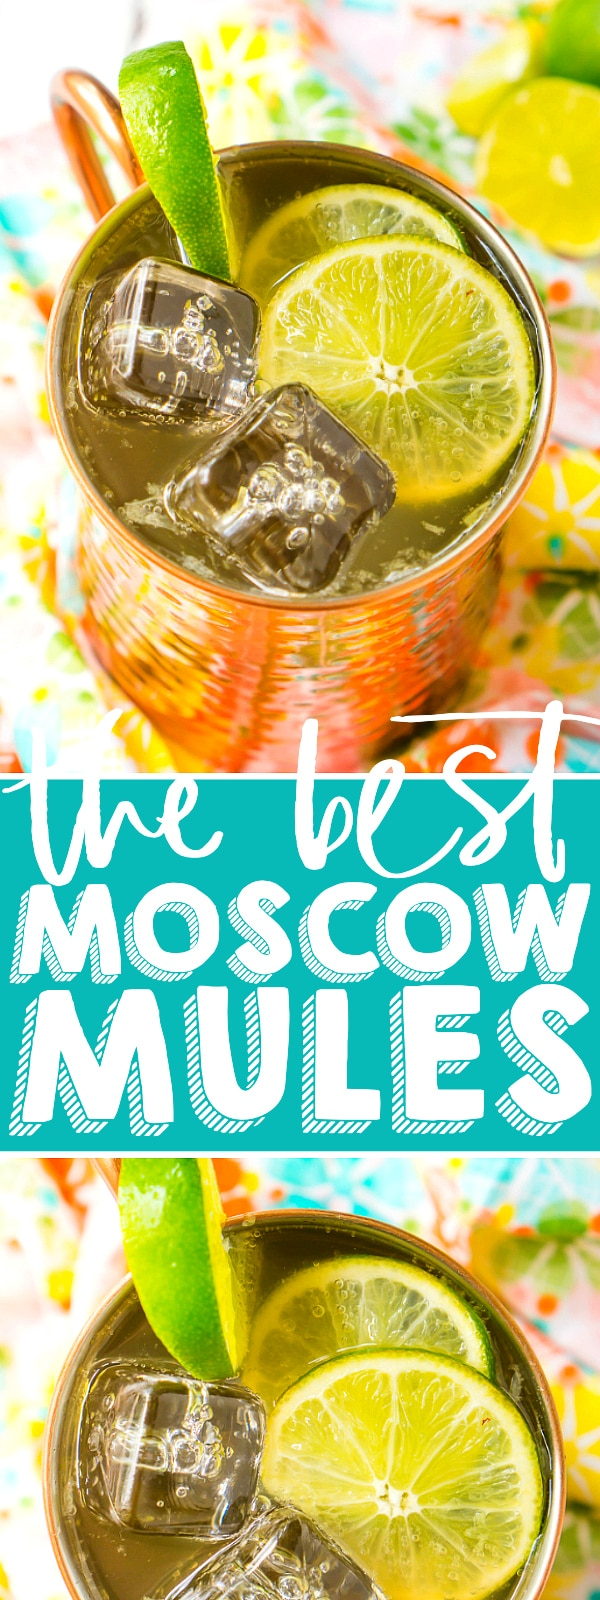 Learn how to make a classic Moscow Mule with only three ingredients for the perfect summer cocktail that is sweet, tangy, and just a little bit spicy! Refreshing and so, so easy!| THE LOVE NERDS #cocktailrecipe #summerdrinks #moscowmulerecipe